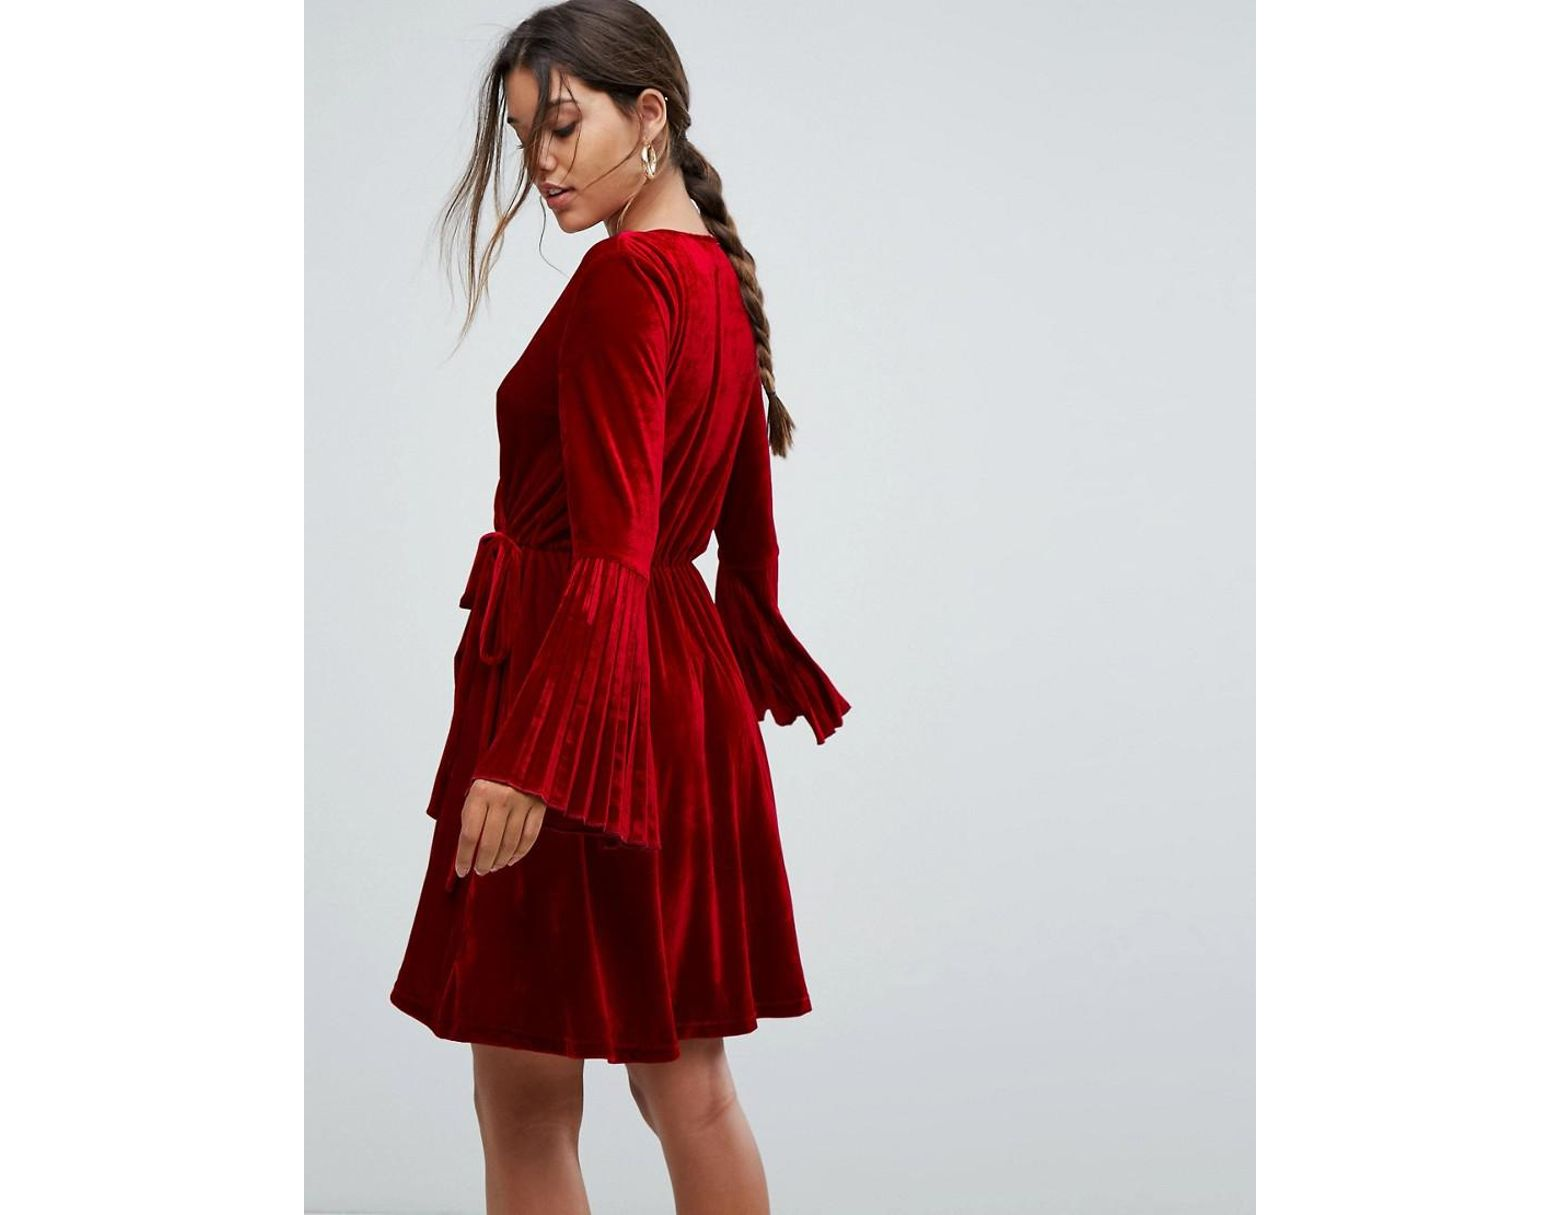 b953cca447 Aeryne Velvet Wrap Dress With Pleated Sleeves in Red - Lyst